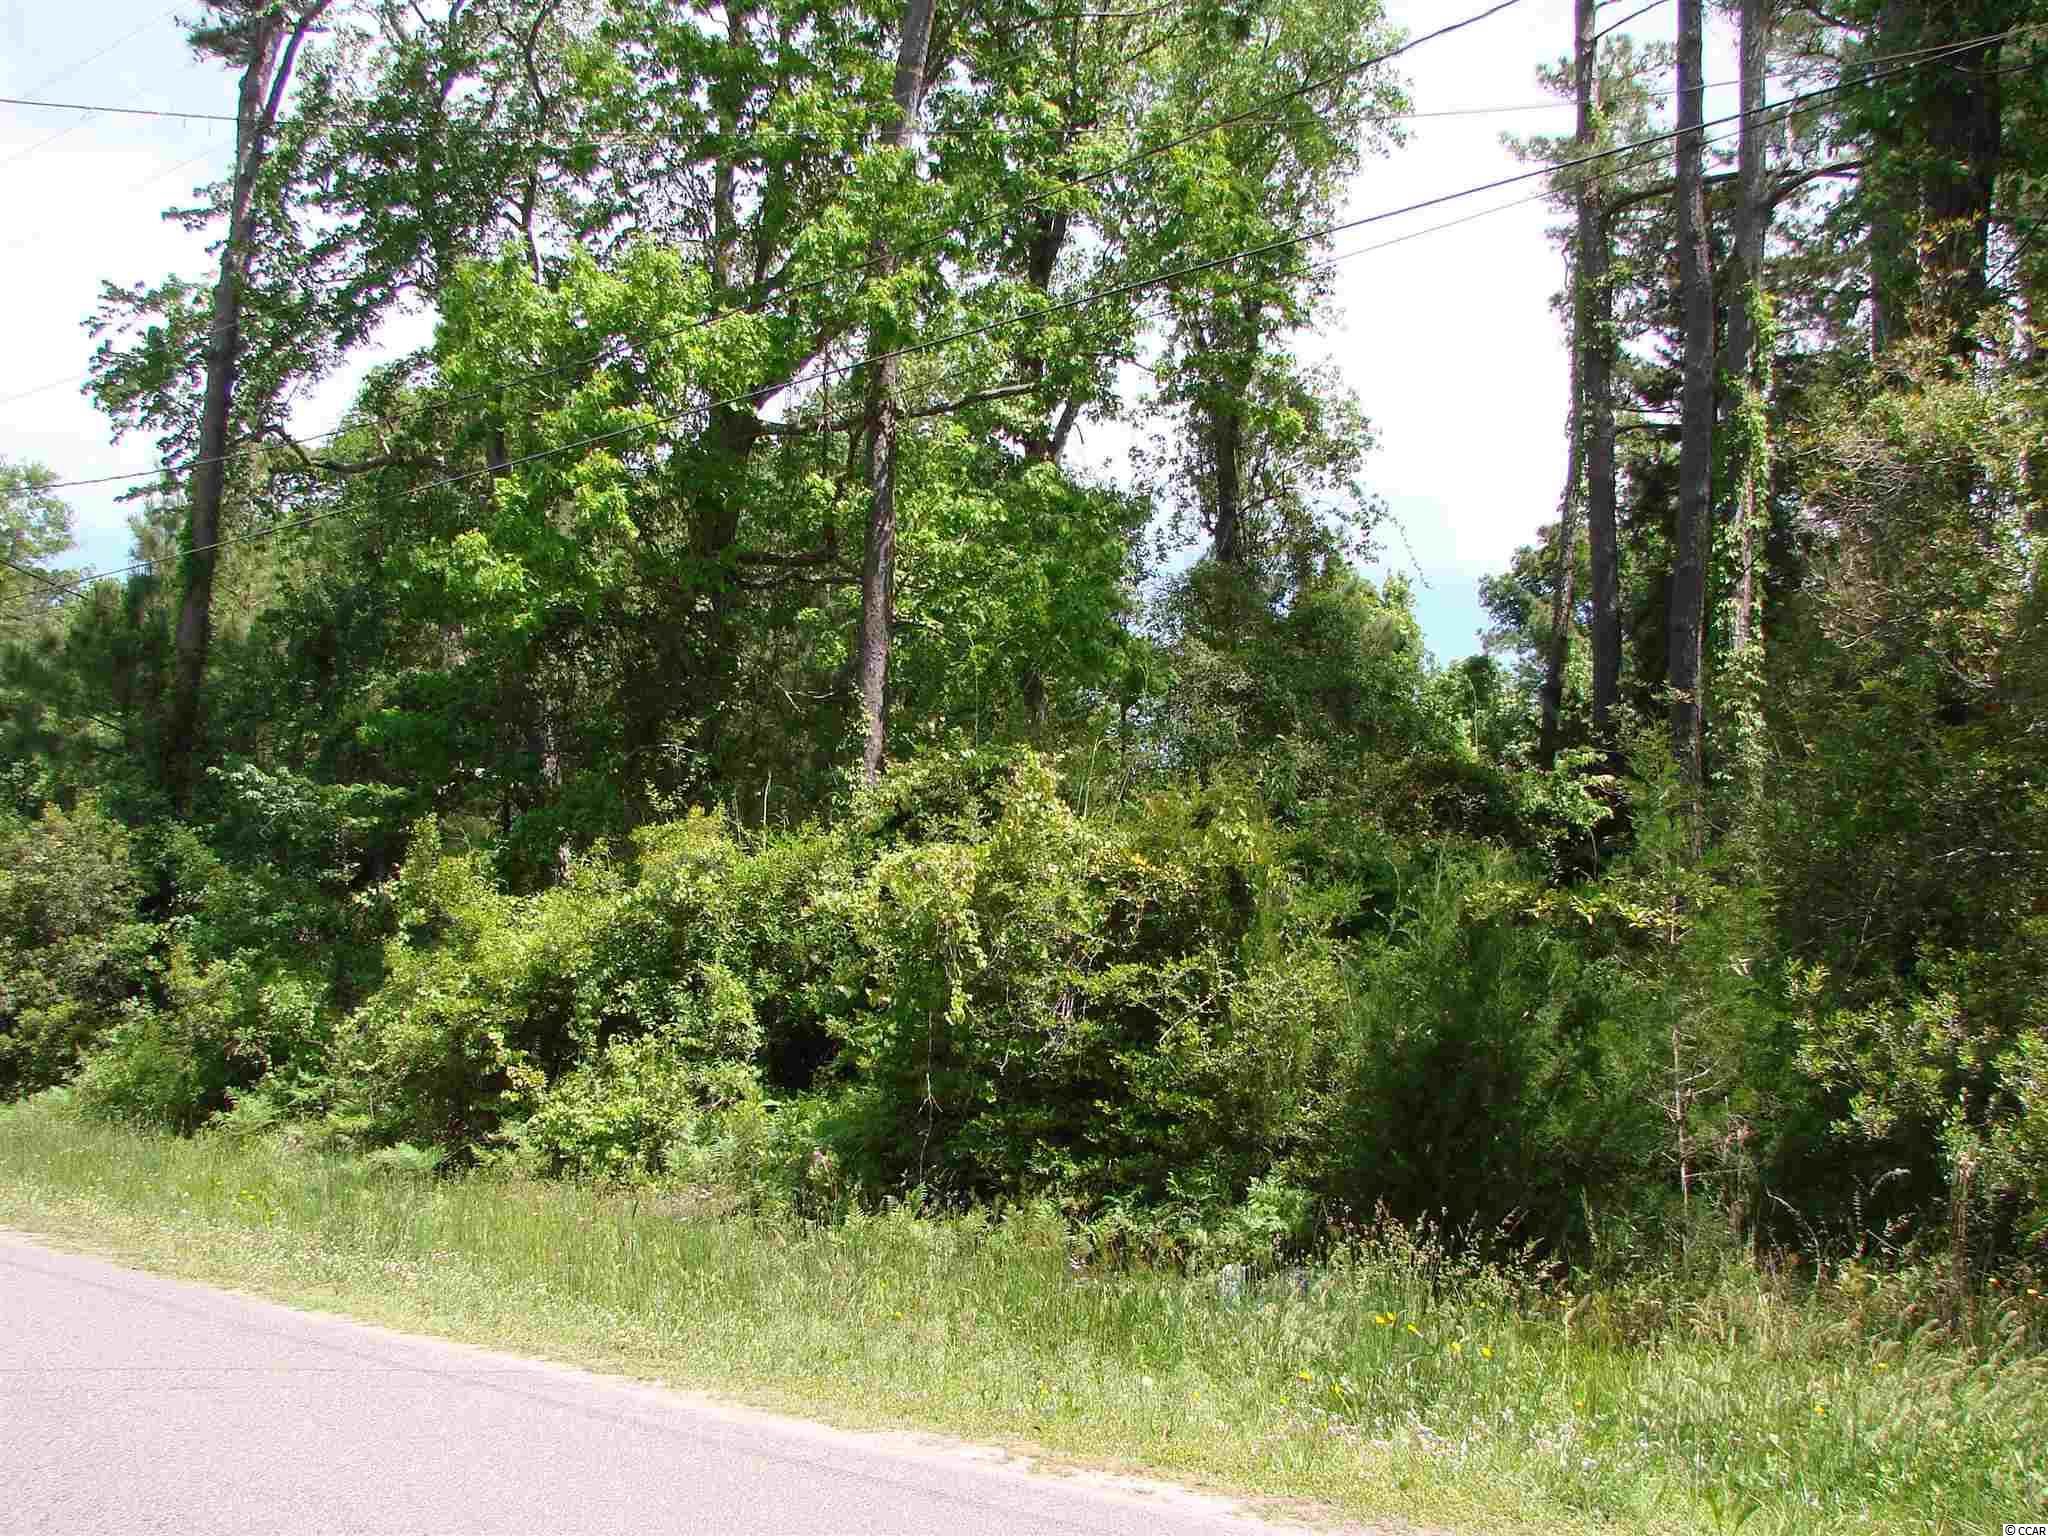 Looking for a homesite to build your dream home in the Cherry Grove Beach section of North Myrtle Beach?  Look no further, you found it! This residential homesite surrounded by custom built homes has No HOA, it's not in a Flood Zone AND you can ride your golf cart to the Beach! Recent survey on file.  Lot is wooded so you can pick and choose which trees to keep (with city approval) and still keep a natural buffer in place.  Close to all that NMB has to offer including area beaches, shopping, golf and area connectors.